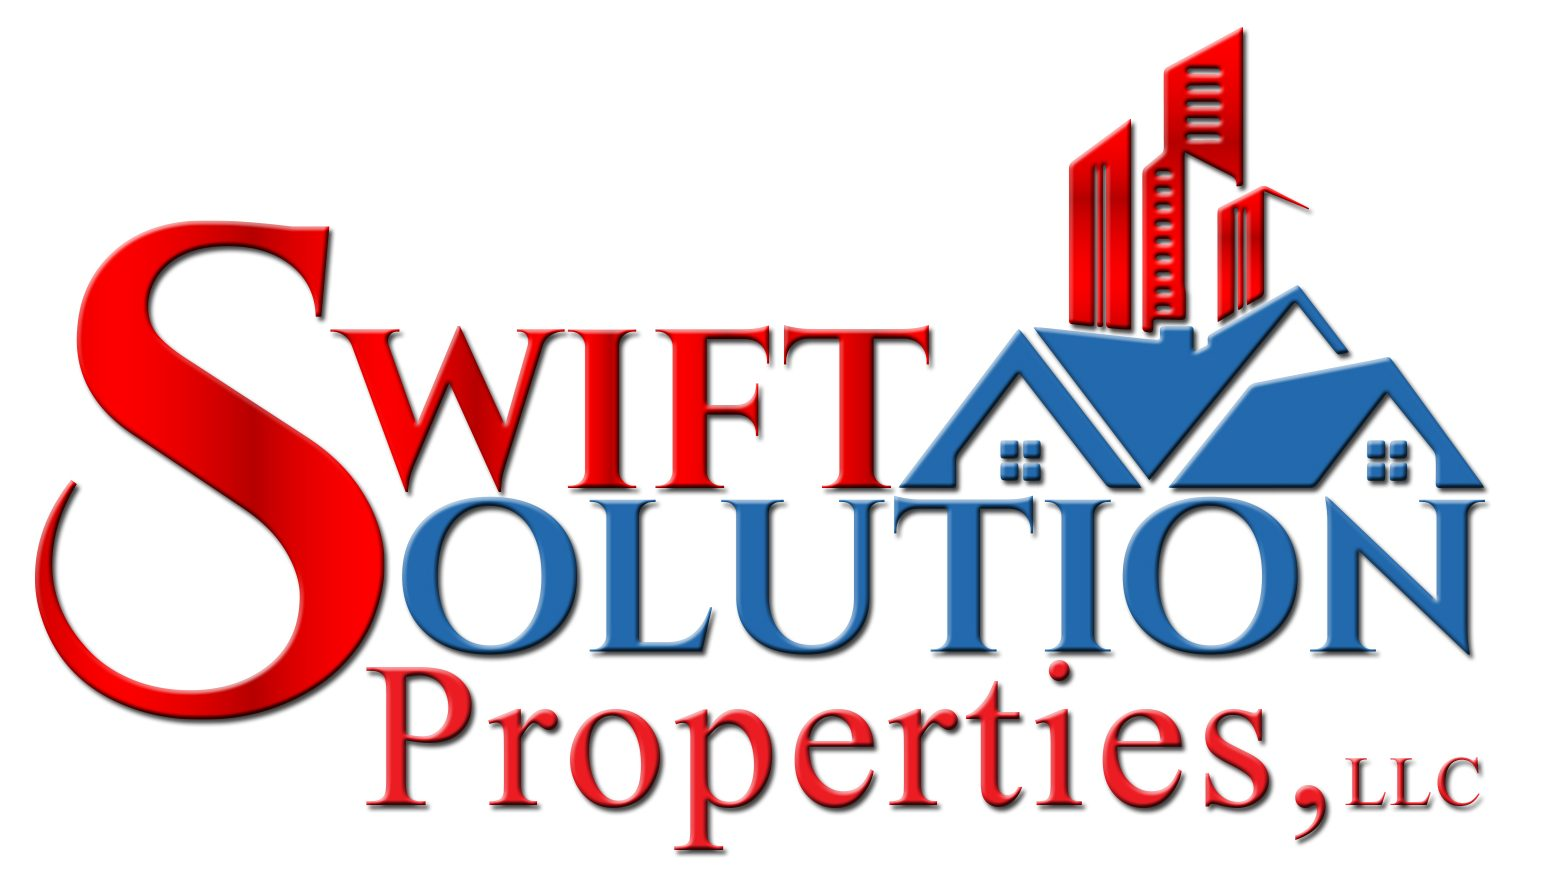 Swift Solution Properties, LLC